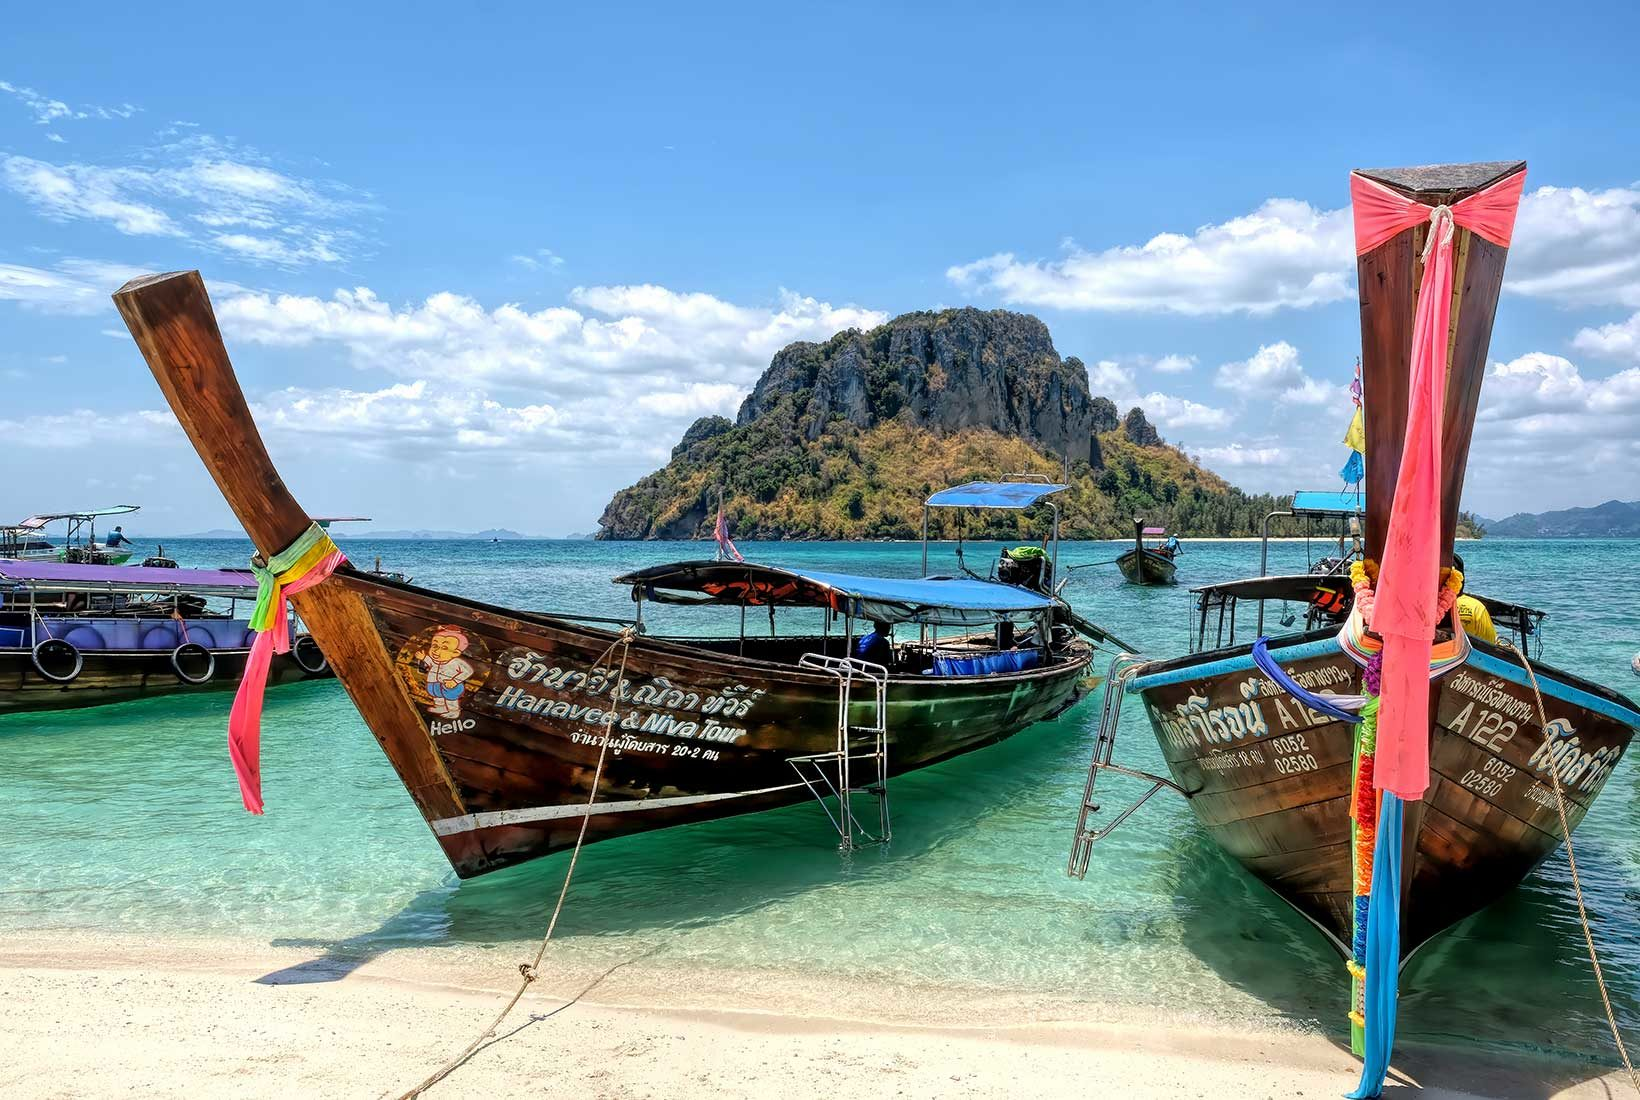 Longtail boats at Koh Tub, a tiny speck of an island in Krabi Province in southern Thailand